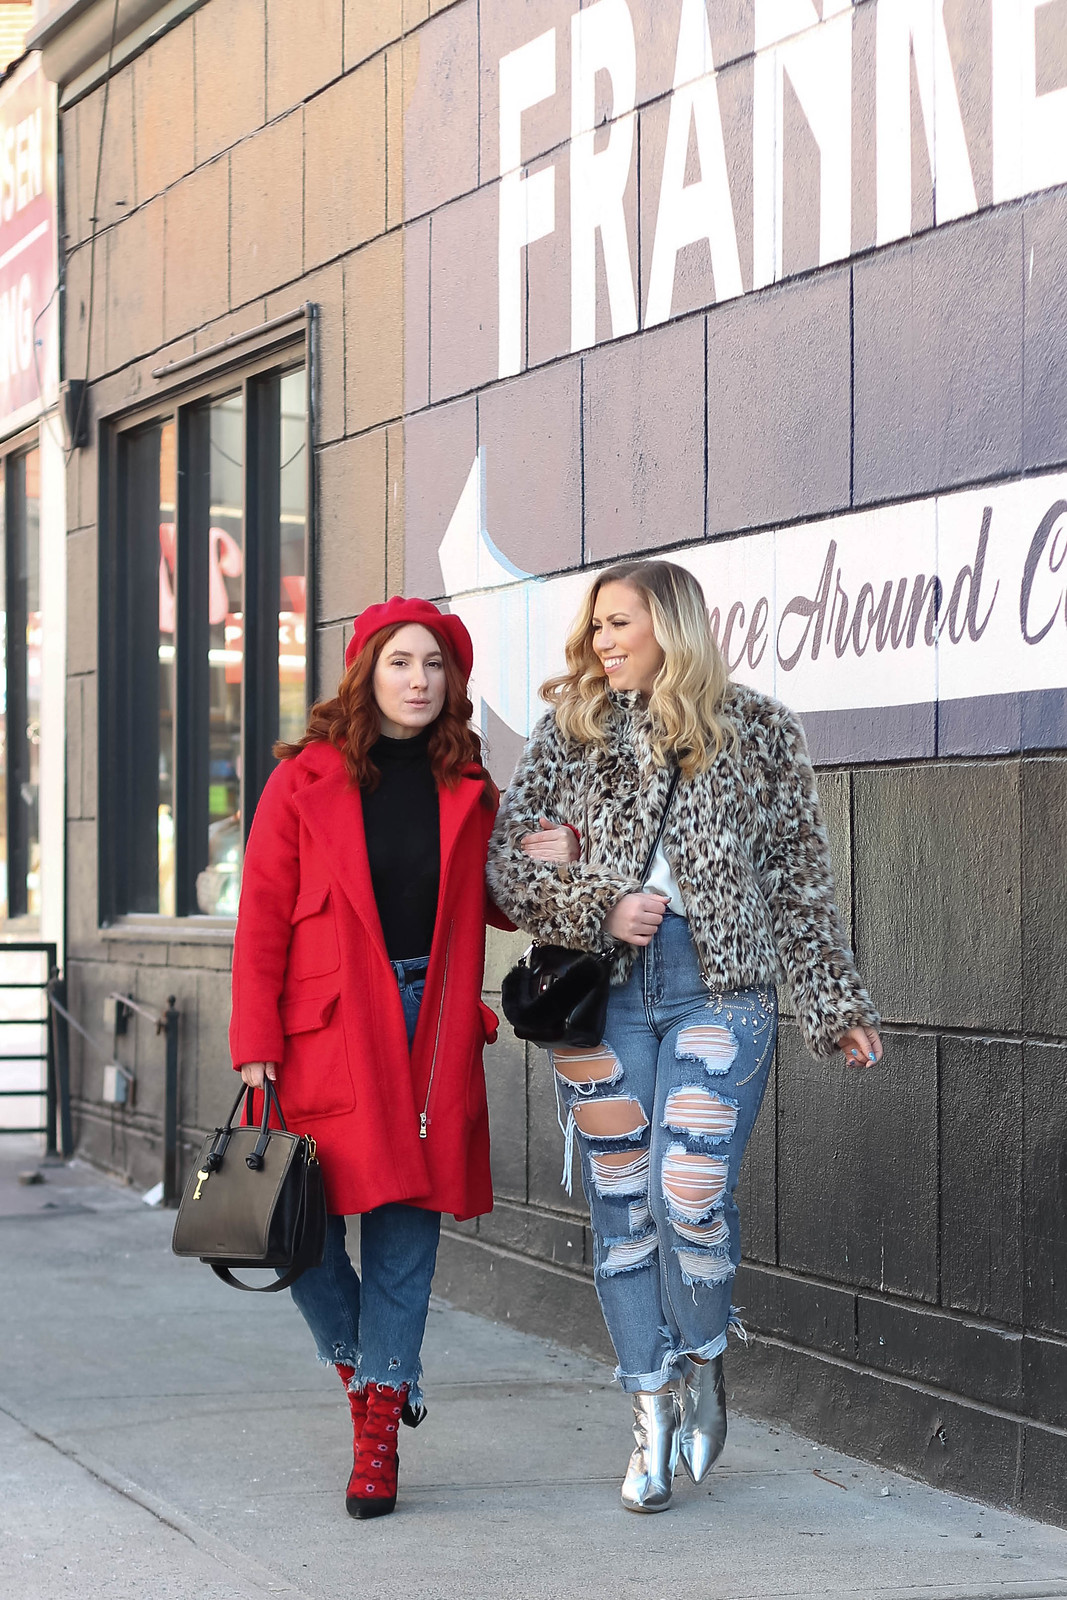 Blogger Friends Red Head Wearing Red Beret Red Coat Blonde Girl Wearing Leopard Coat Distressed Jeans